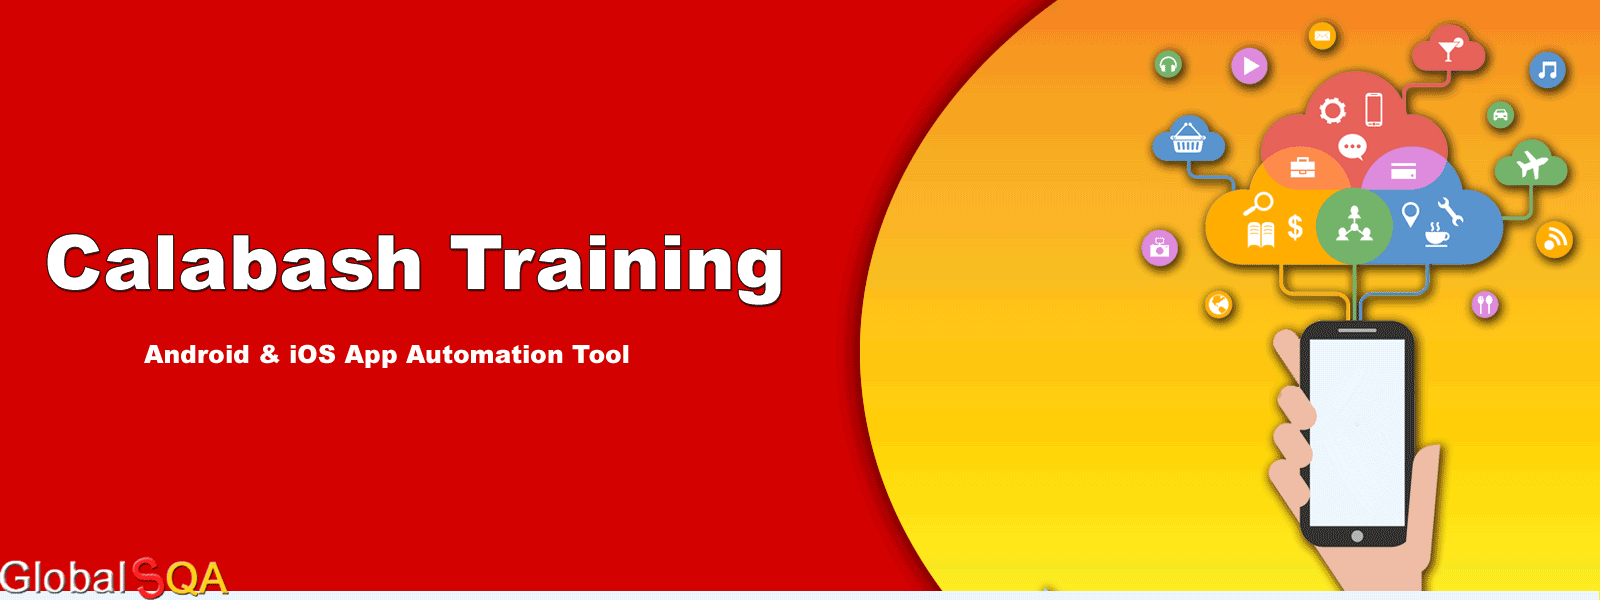 Calabash Training | Mobile App Automation Tool